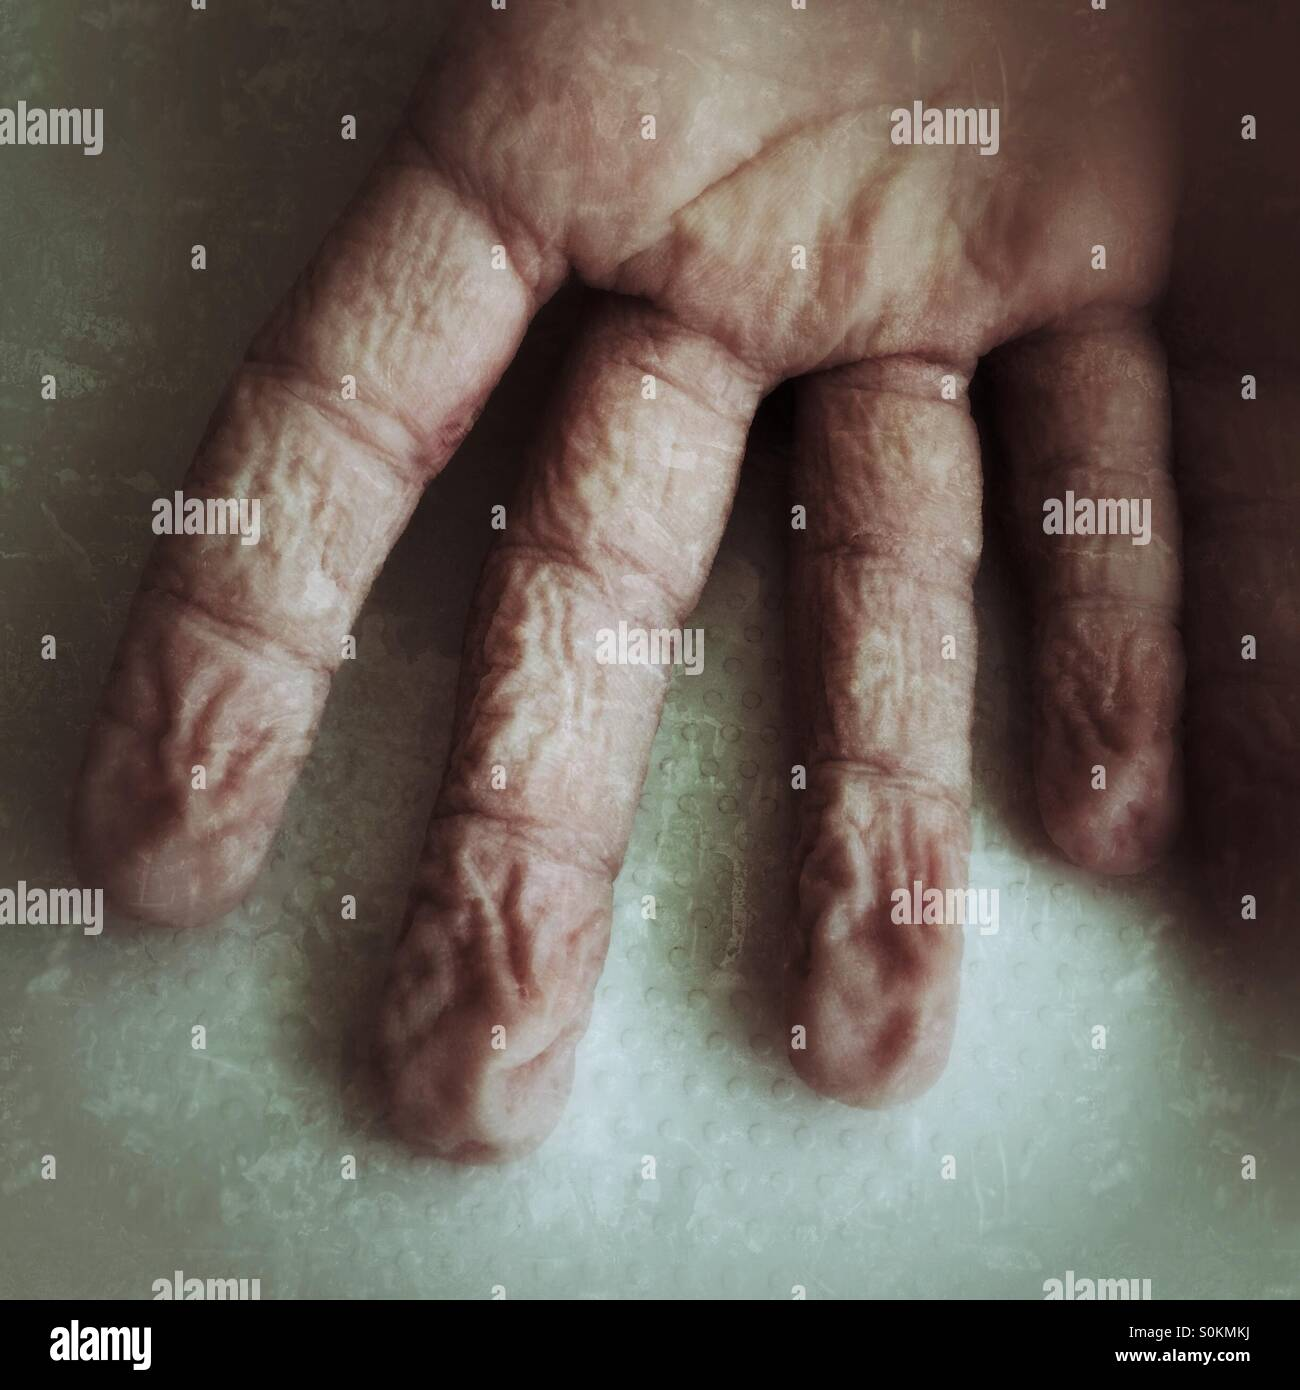 The wrinkled fingers of a young boy after swimming - Stock Image